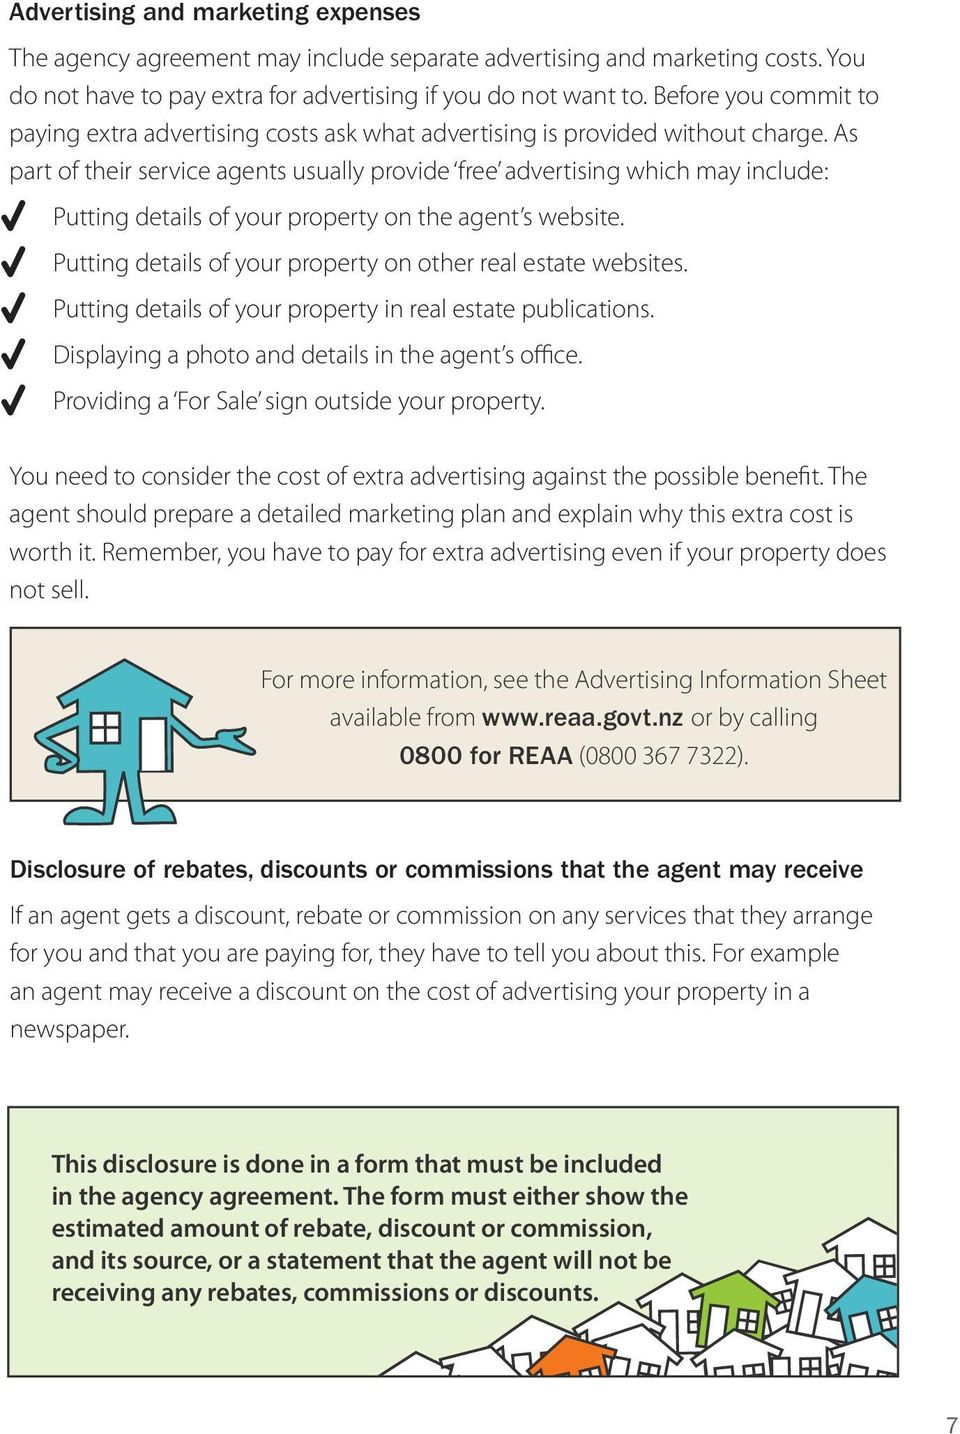 New Zealand Residential Property Sale And Purchase Agreements Guide